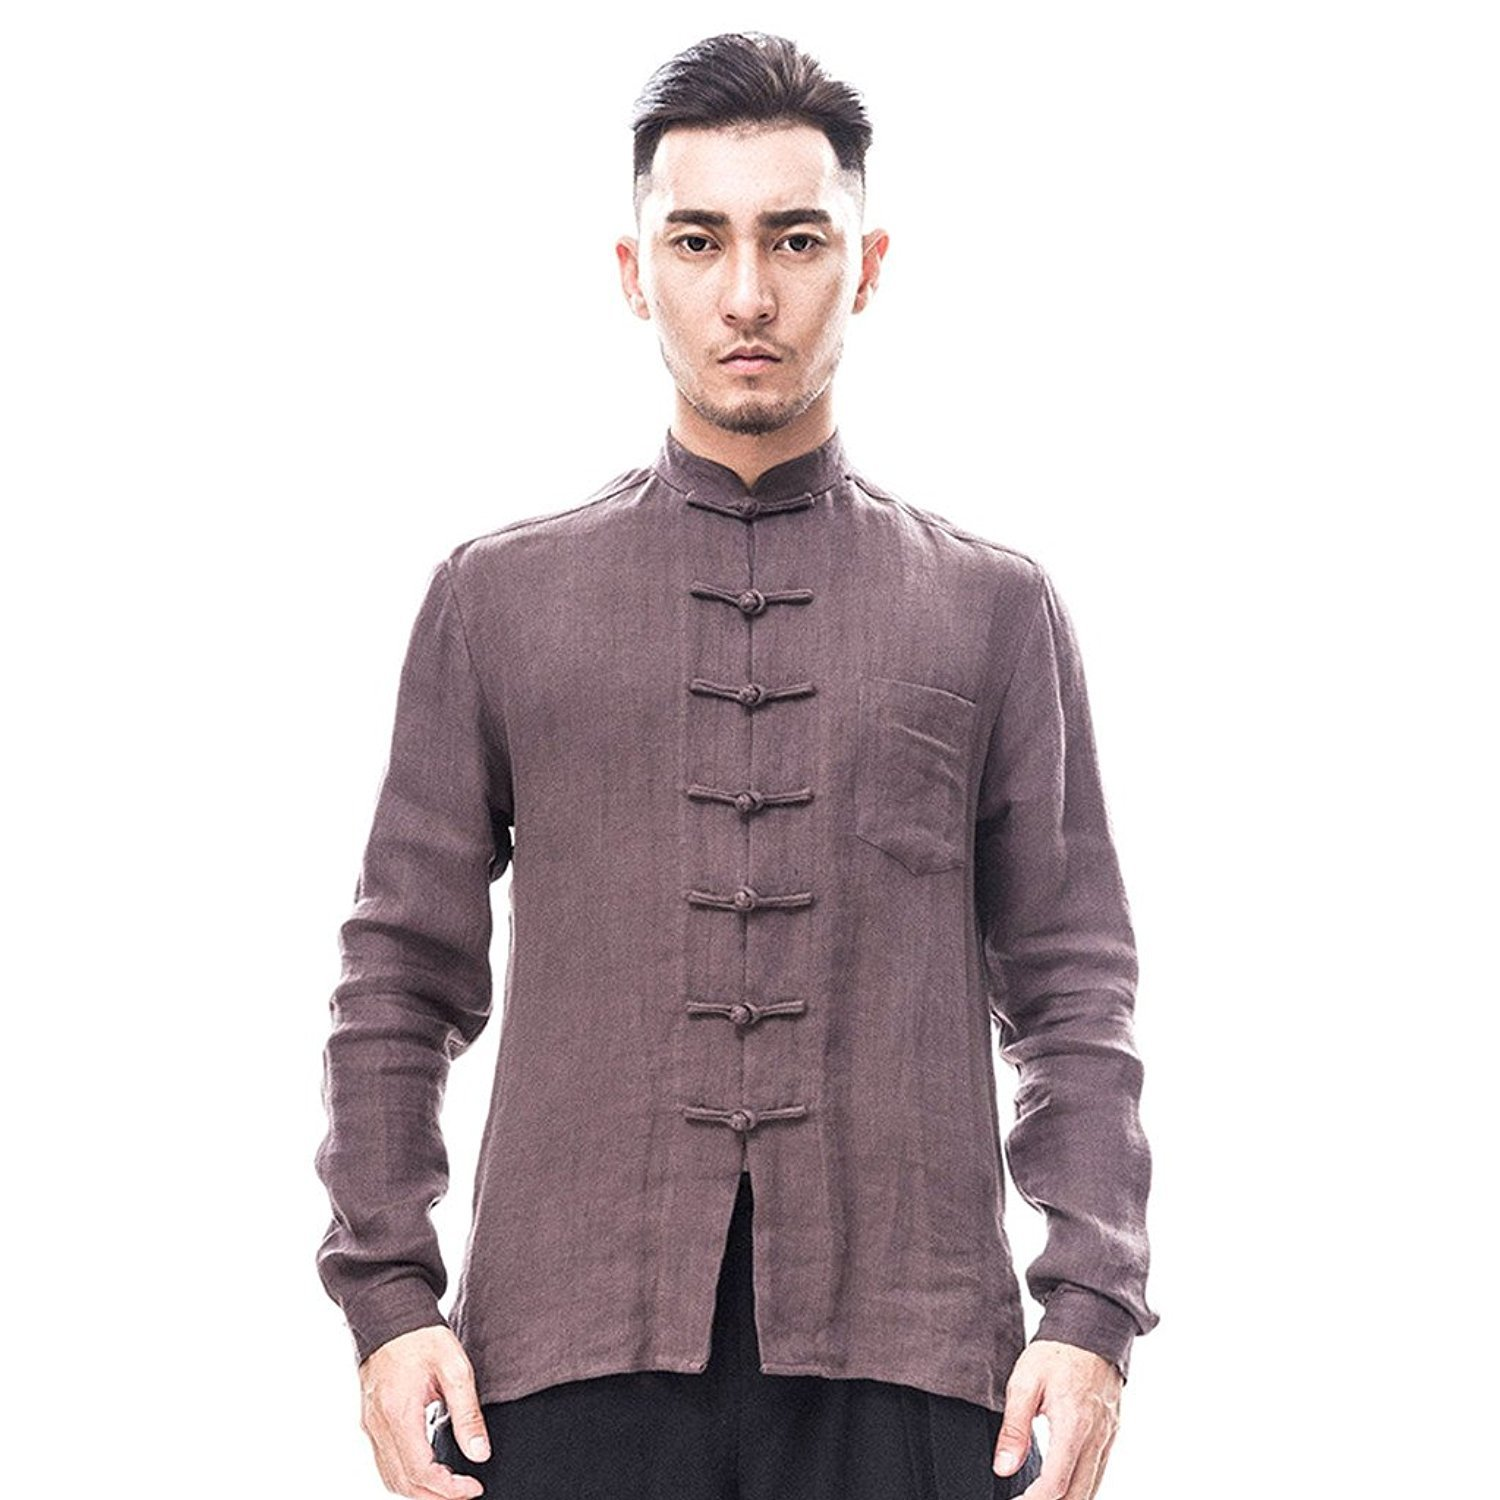 Kung Fu Smith Tai Chi Men Vintage Design Long Sleeve Buttions Linen Slim Fit T Shirt (XX-Large, Brown)